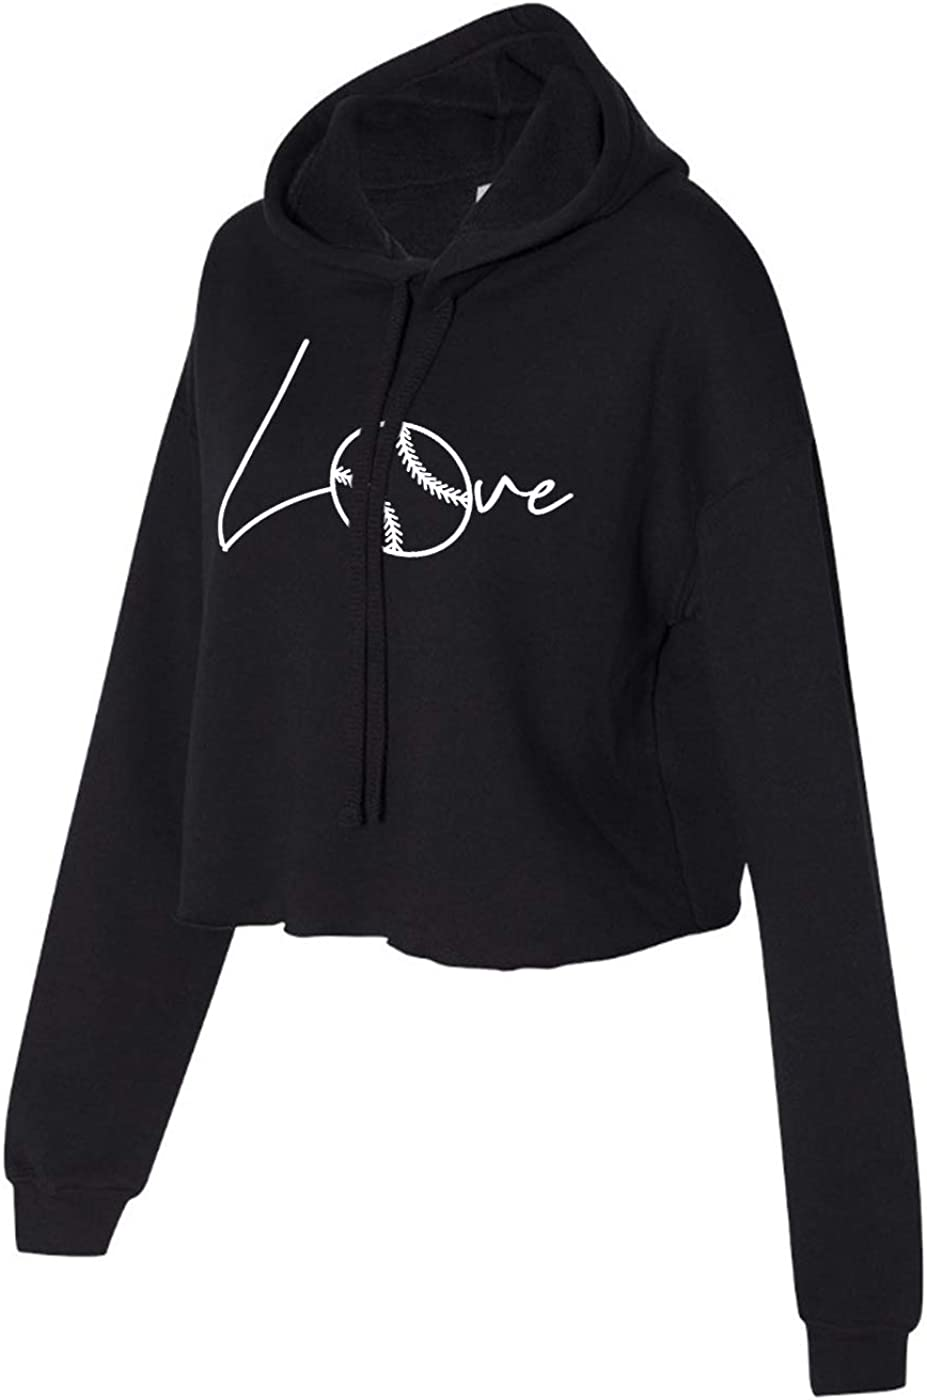 Love Softball Cropped Hoodie for Athletic Teen Girl